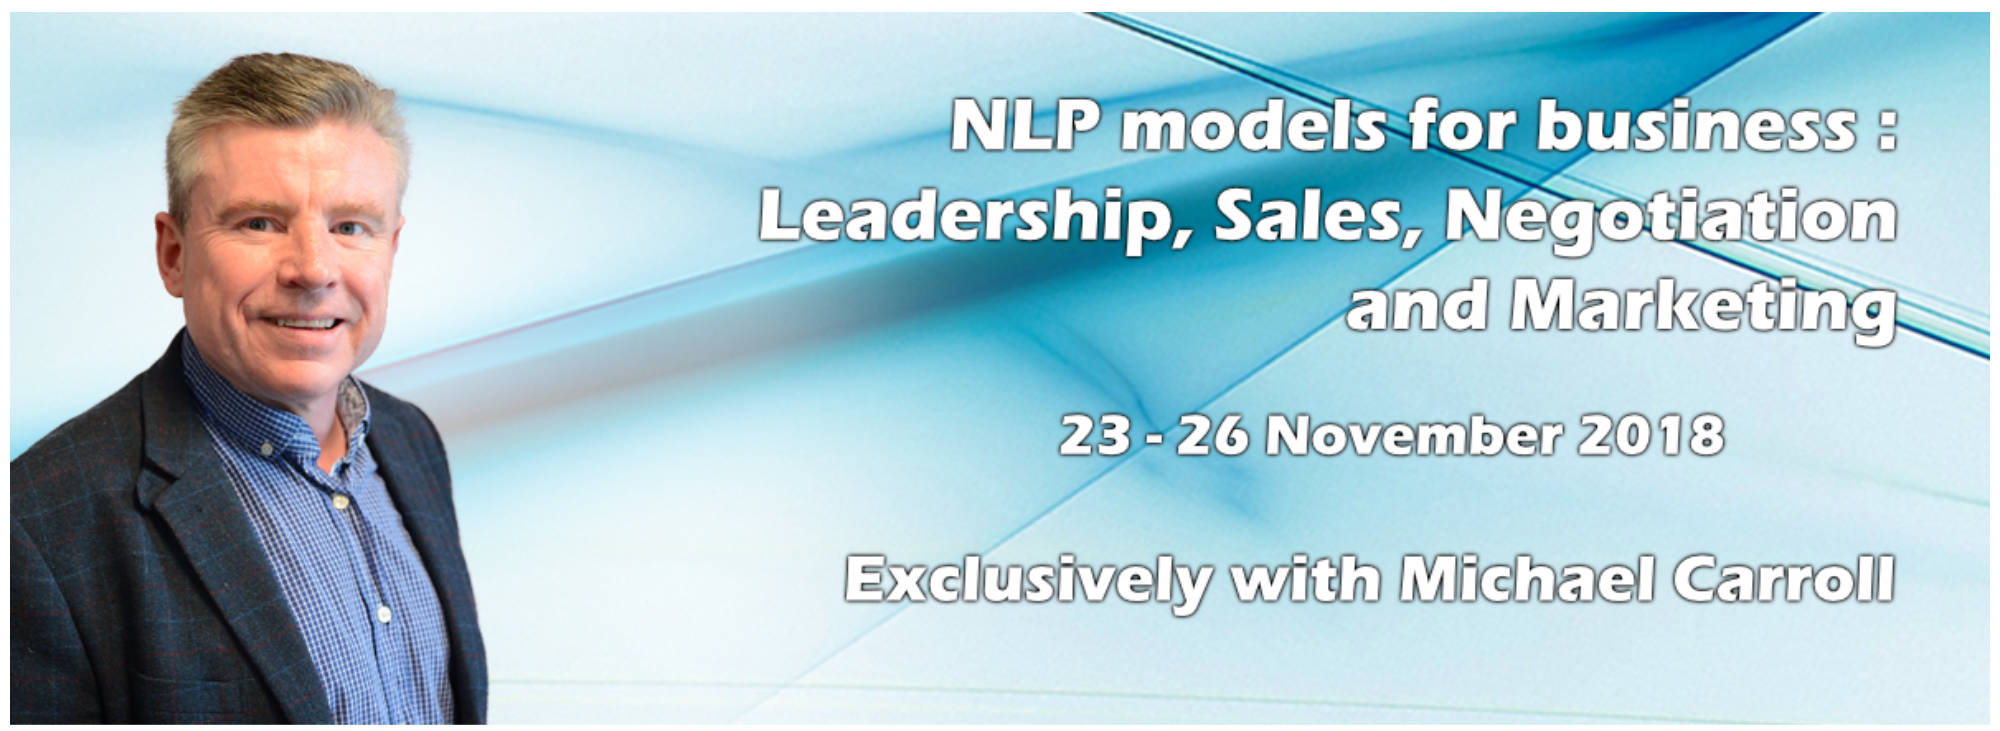 NLP models for business : leadership, sales, negotiation and marketing (London)